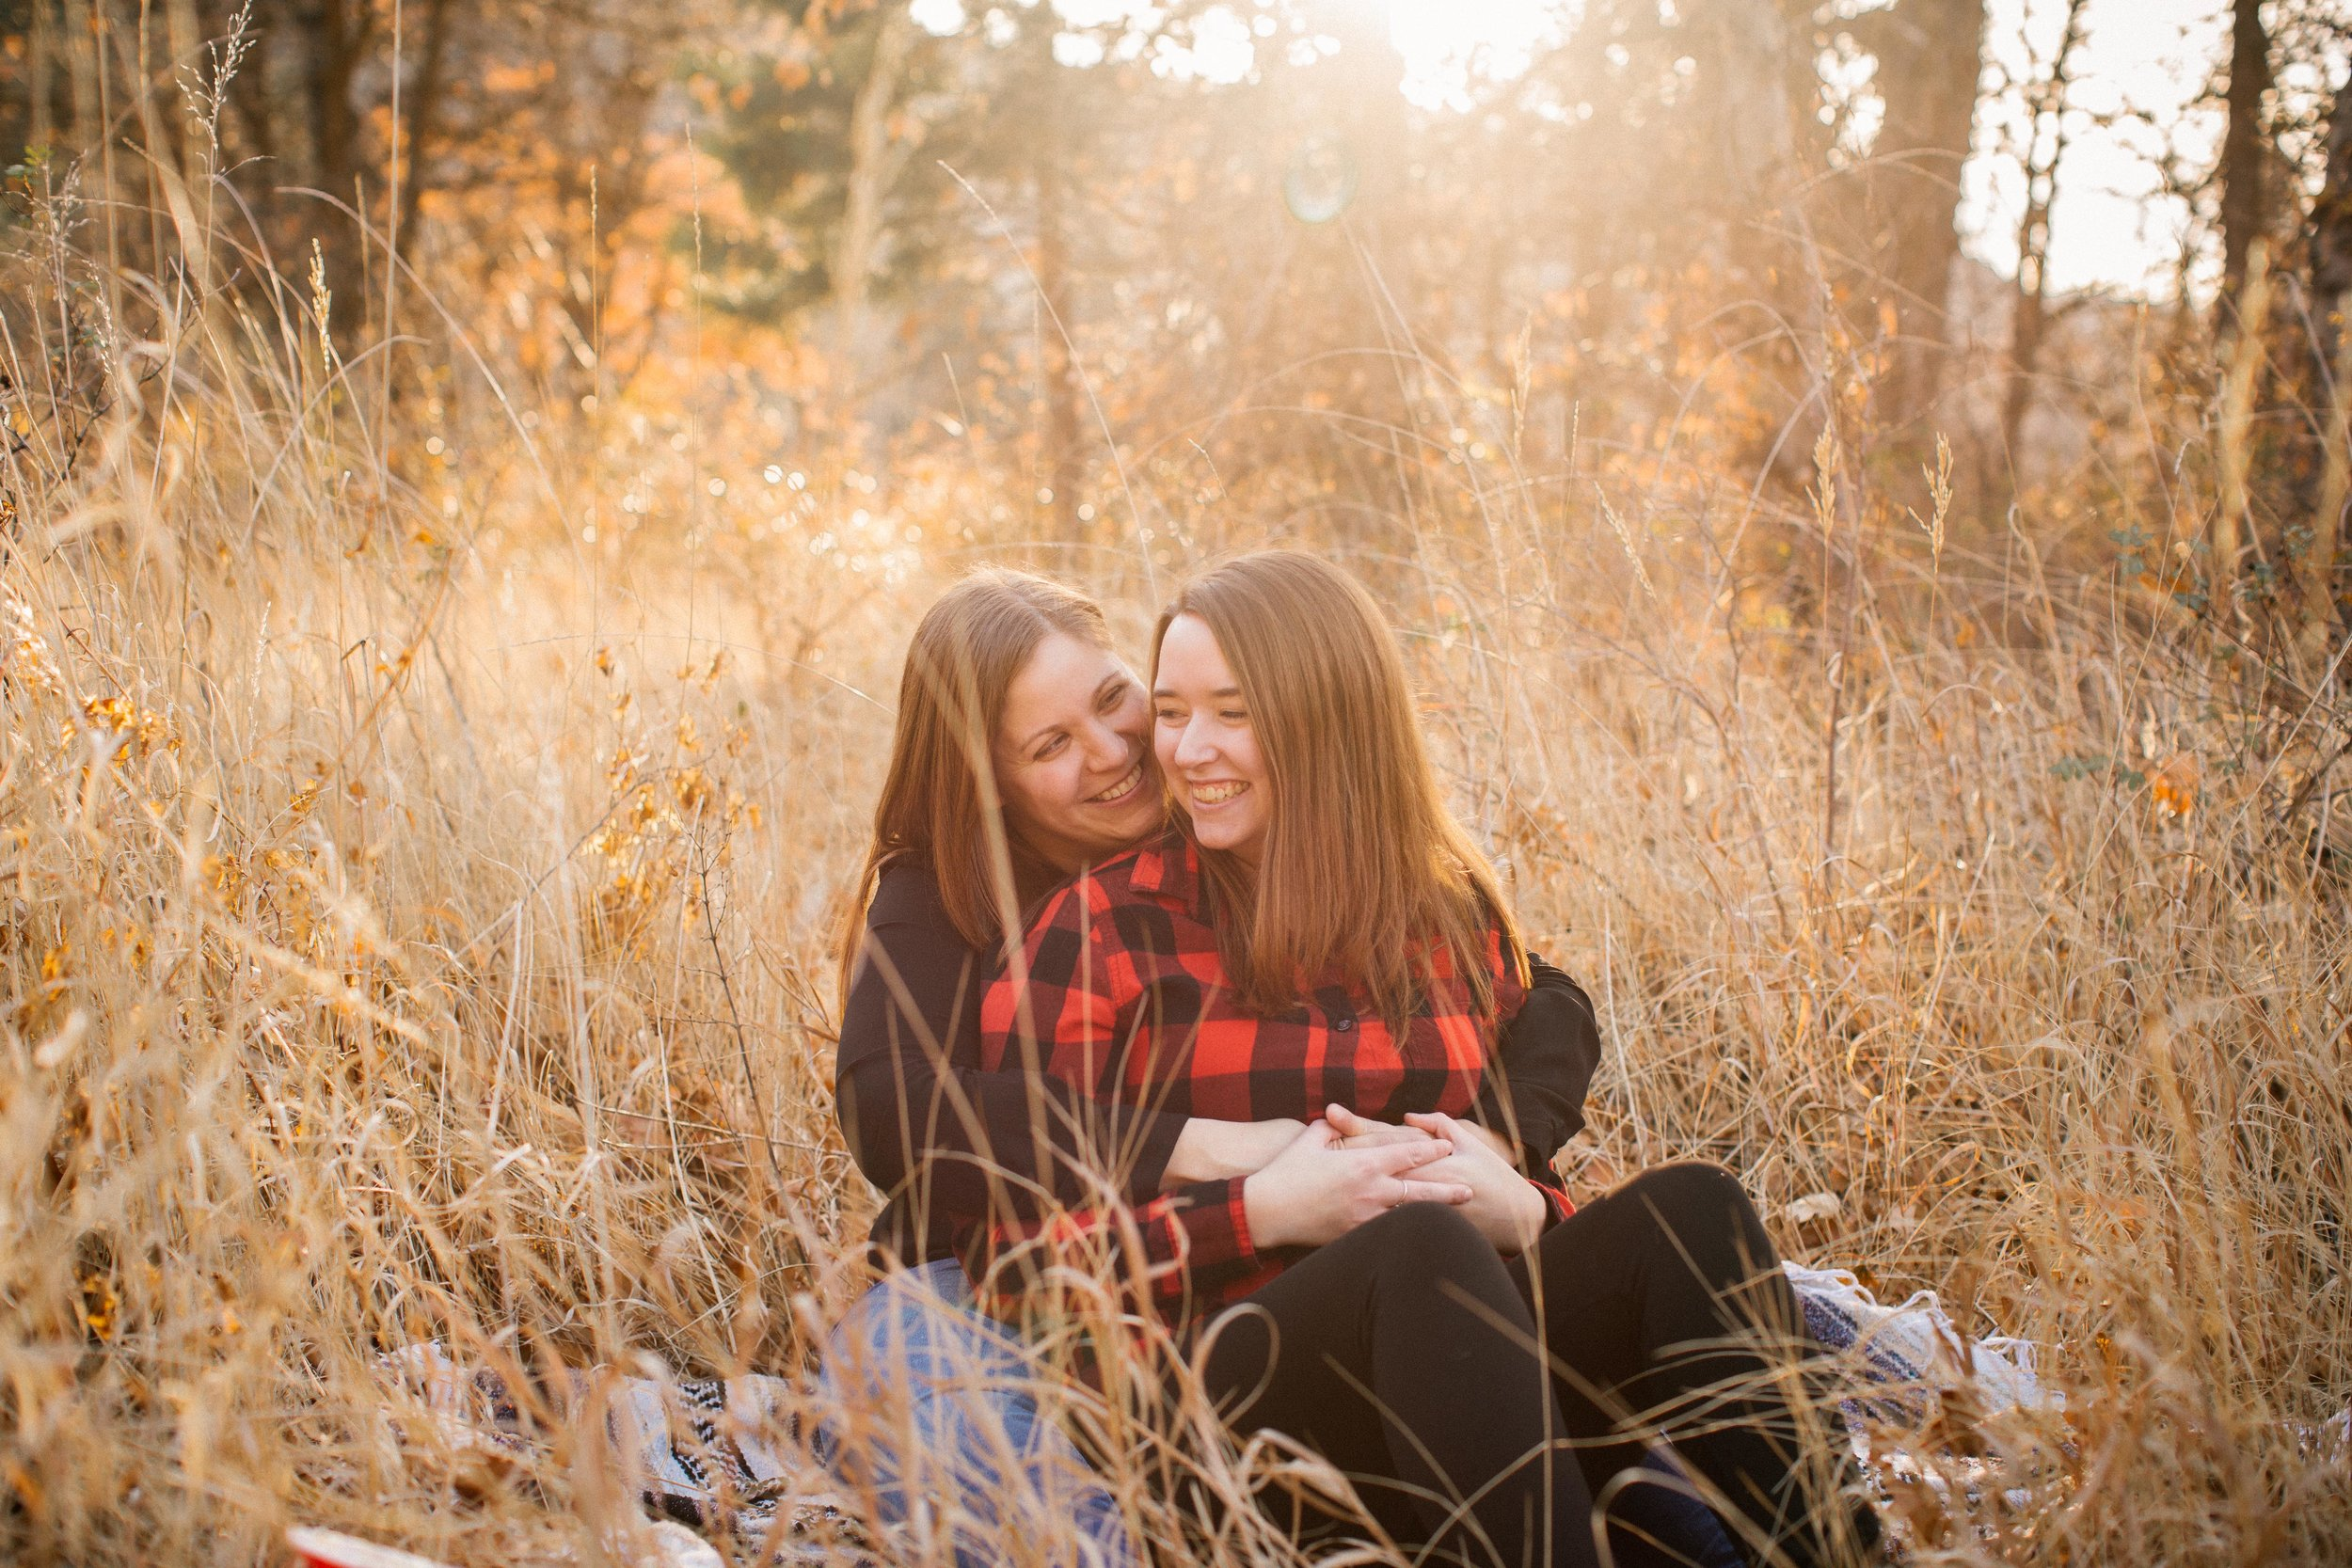 Love Inc Magazine - Cozy Golden Hour Engagement Shoot in Rustic Washington Valley